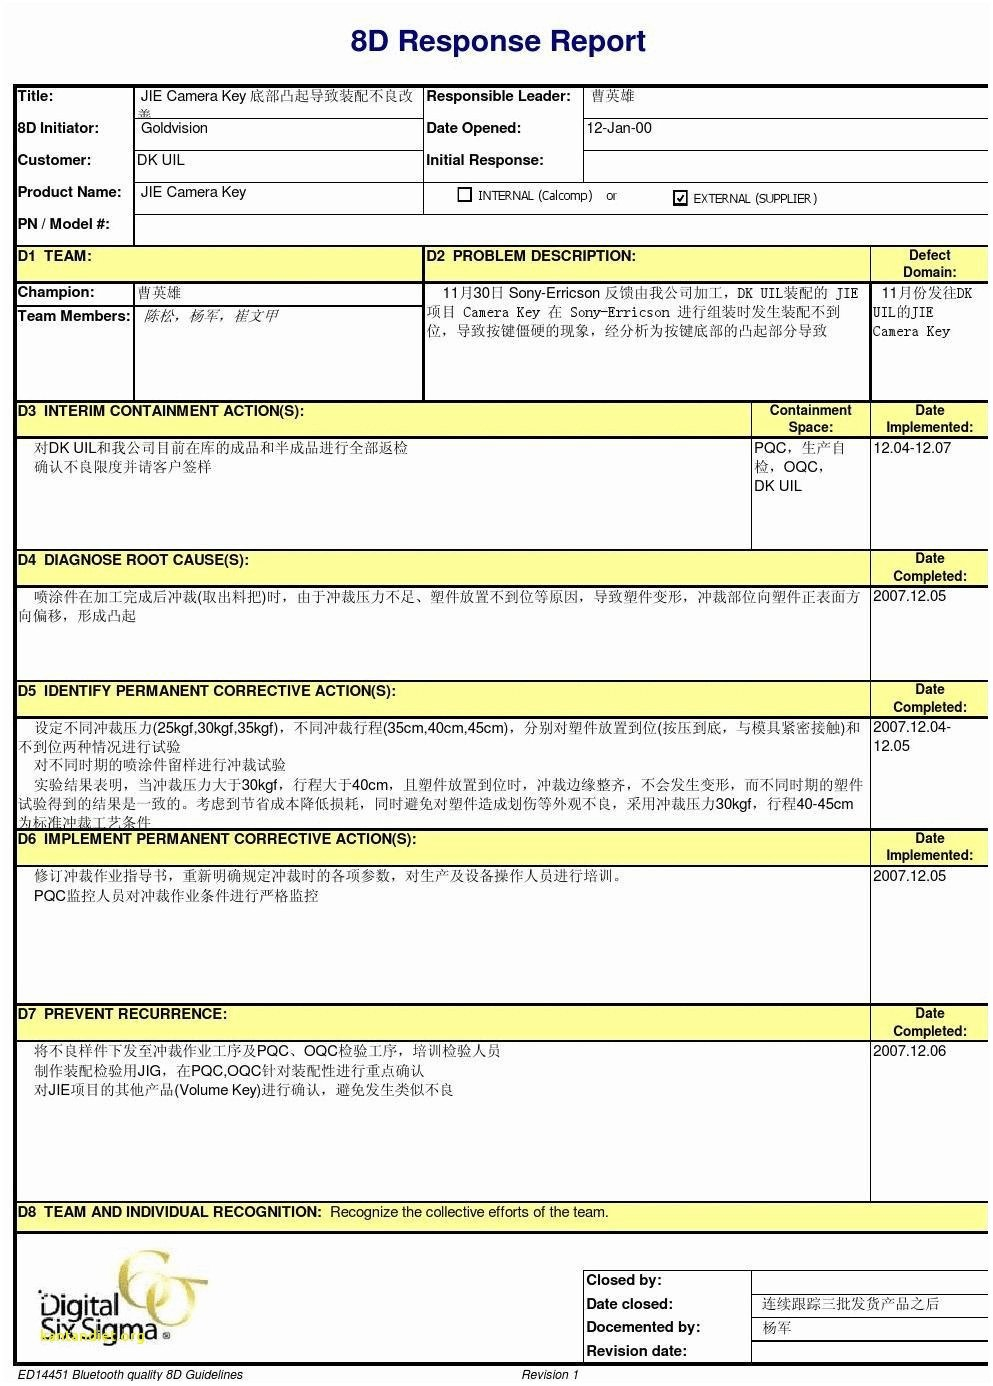 D Report Vorlage Sinnreich D Report Template Templates Station Intended For 8d Report Format Template 10 Pro Report Template Templates Report Writing Format